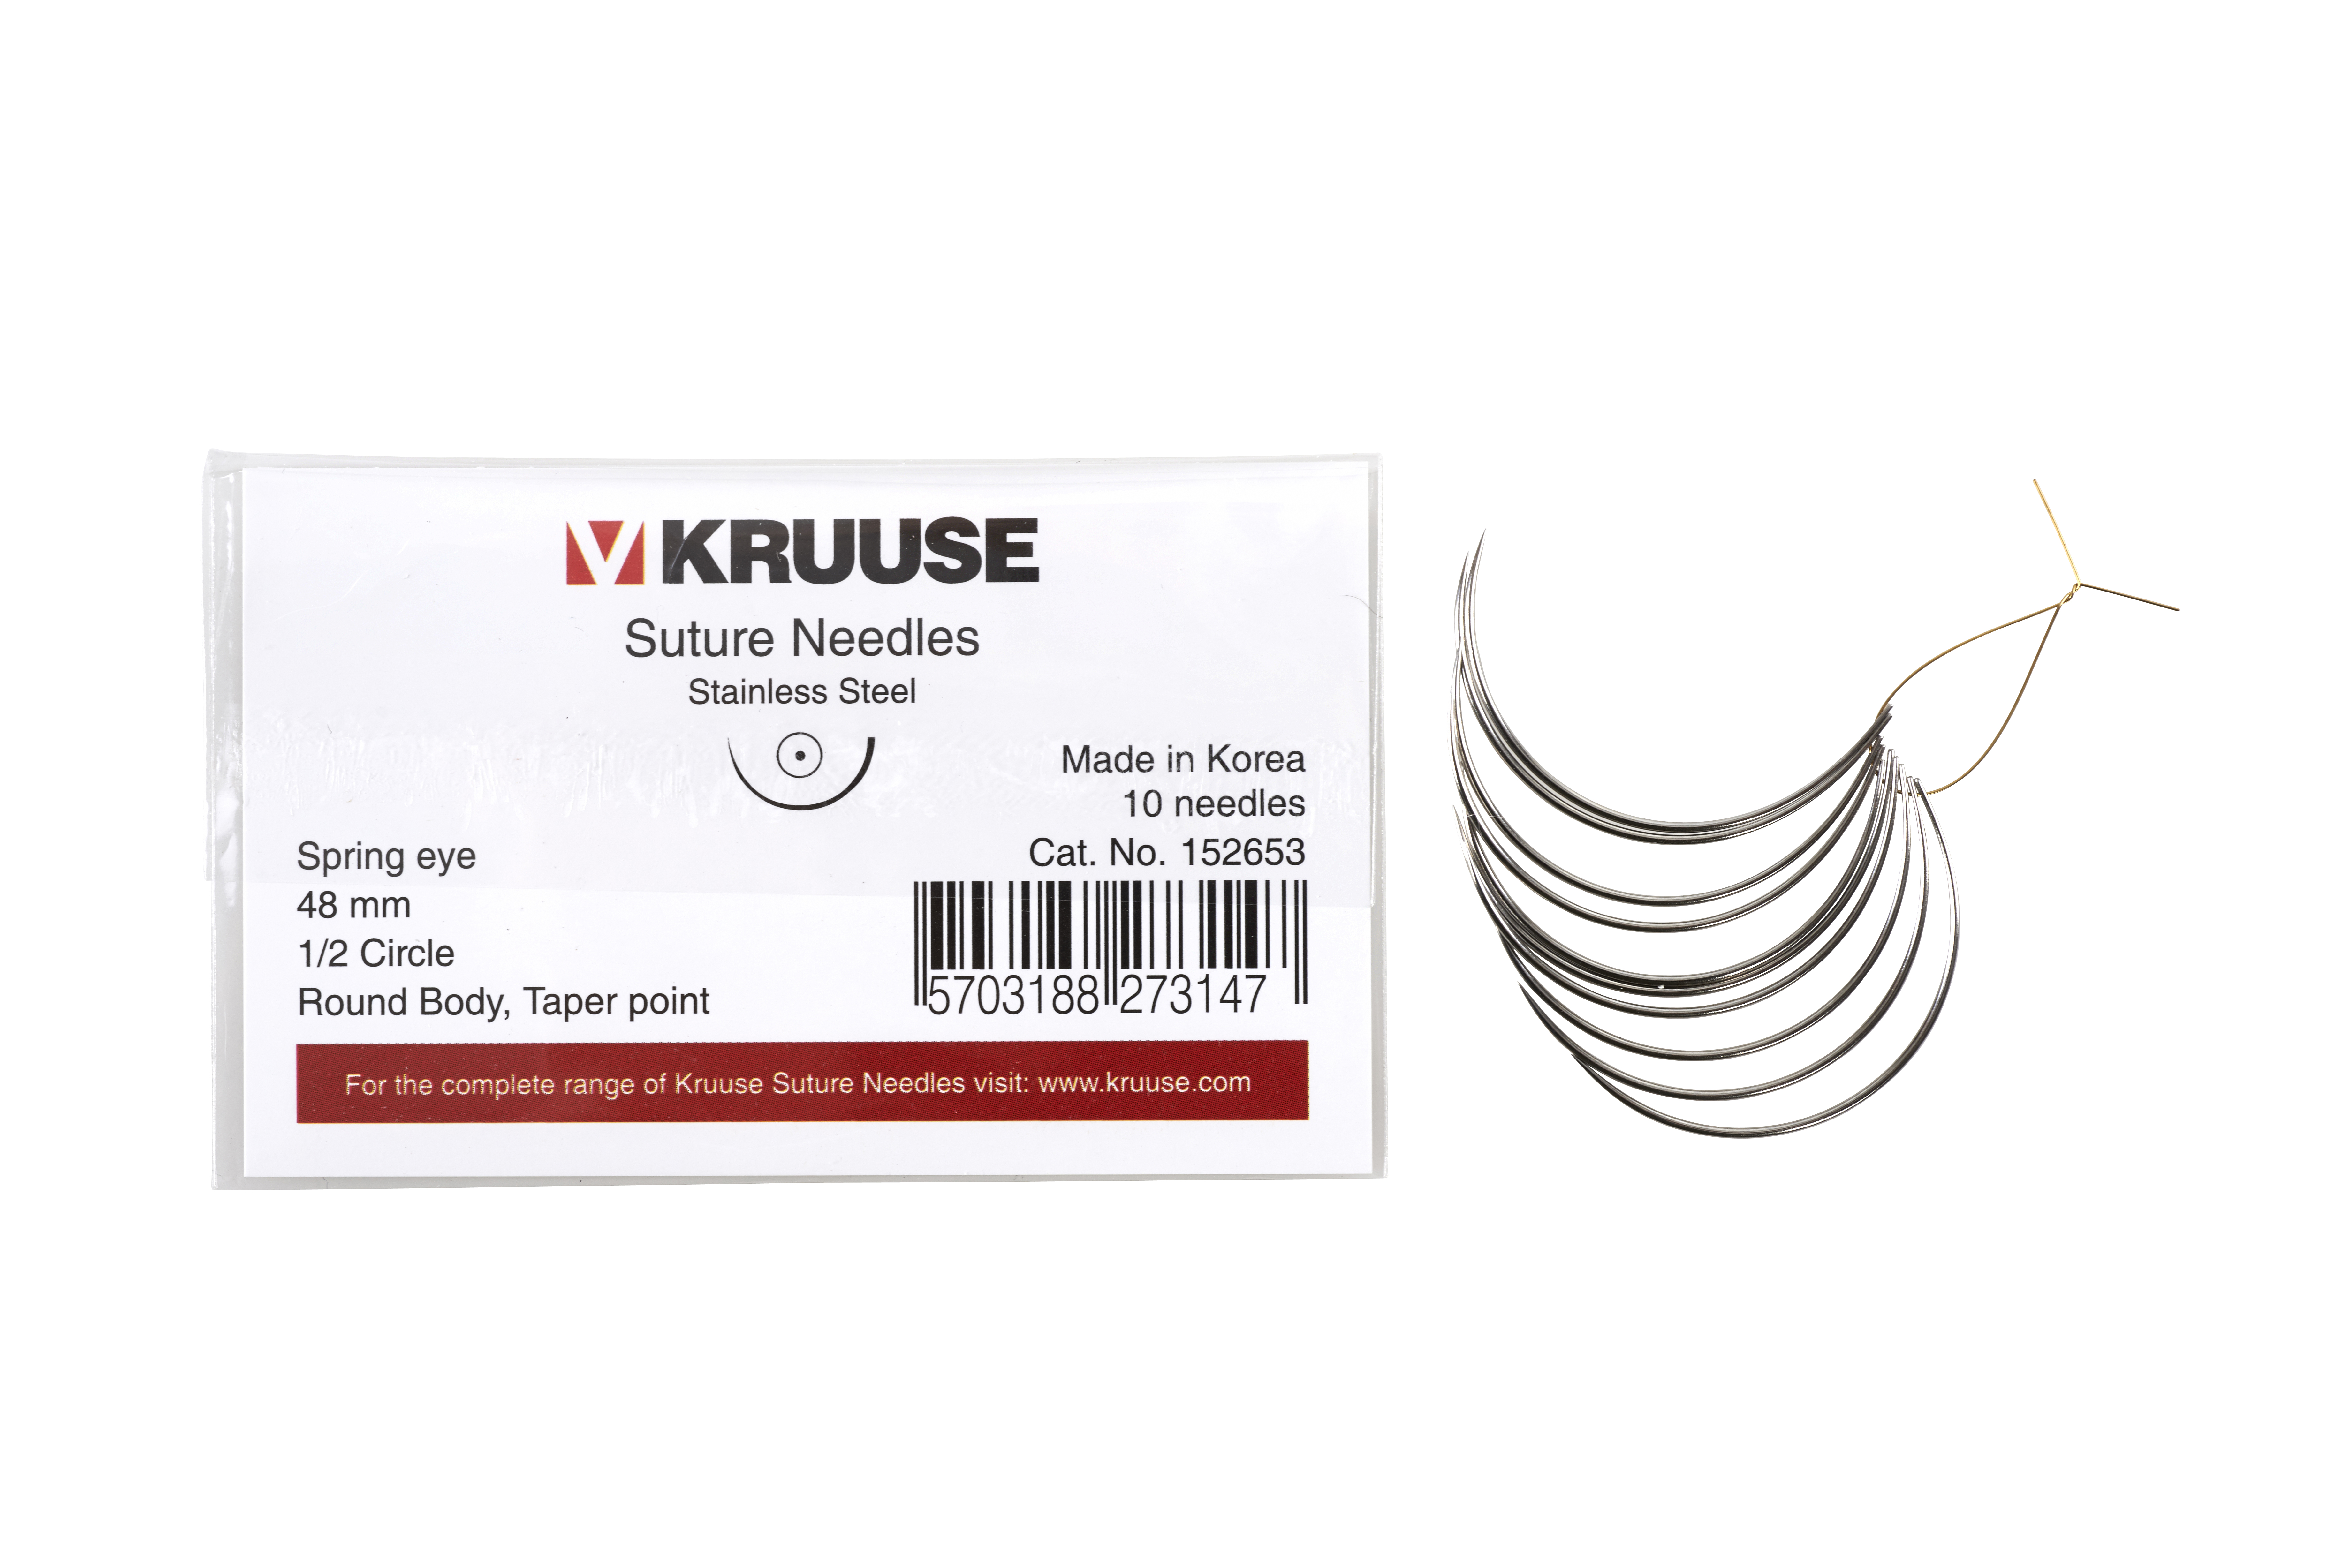 KRUUSE suture needle spring eye, 1/2 circle, round body, taper point, 48 mm, 10/pk